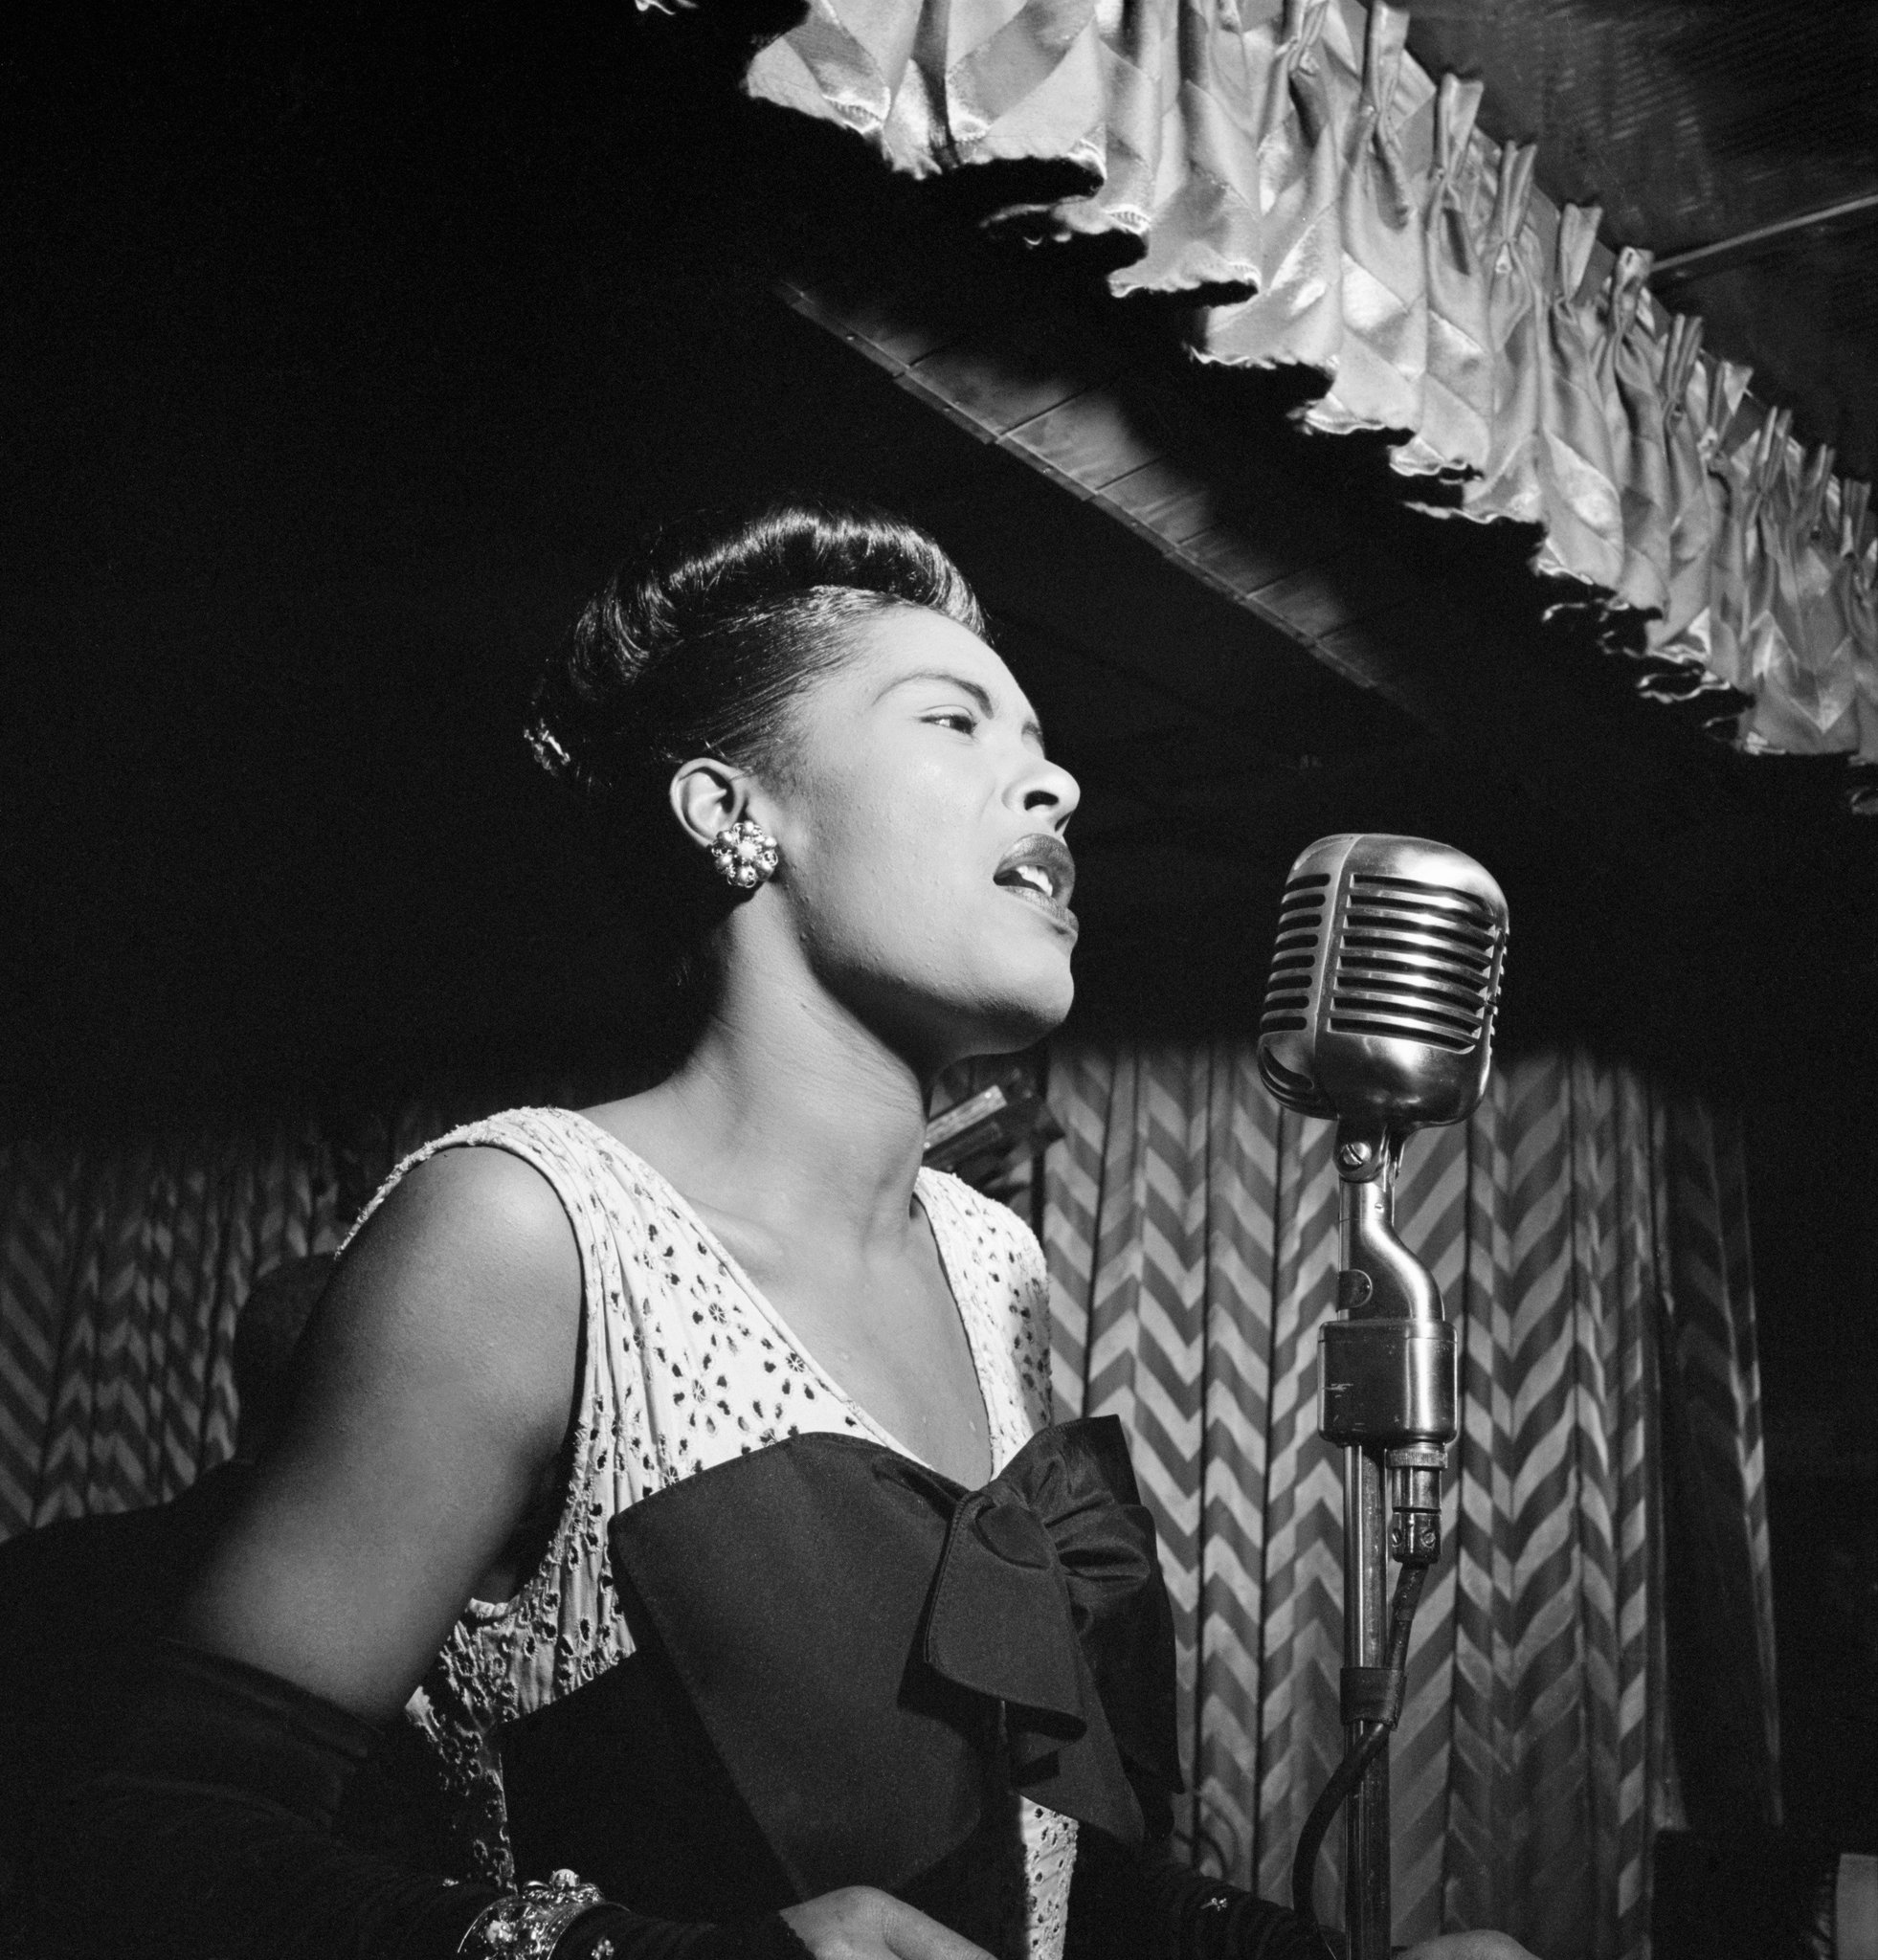 Happy birthday to the legendary Lady Day! #BillieHoliday was born on this day in 1915 in Philadelphia. What's your favorite recording of hers?